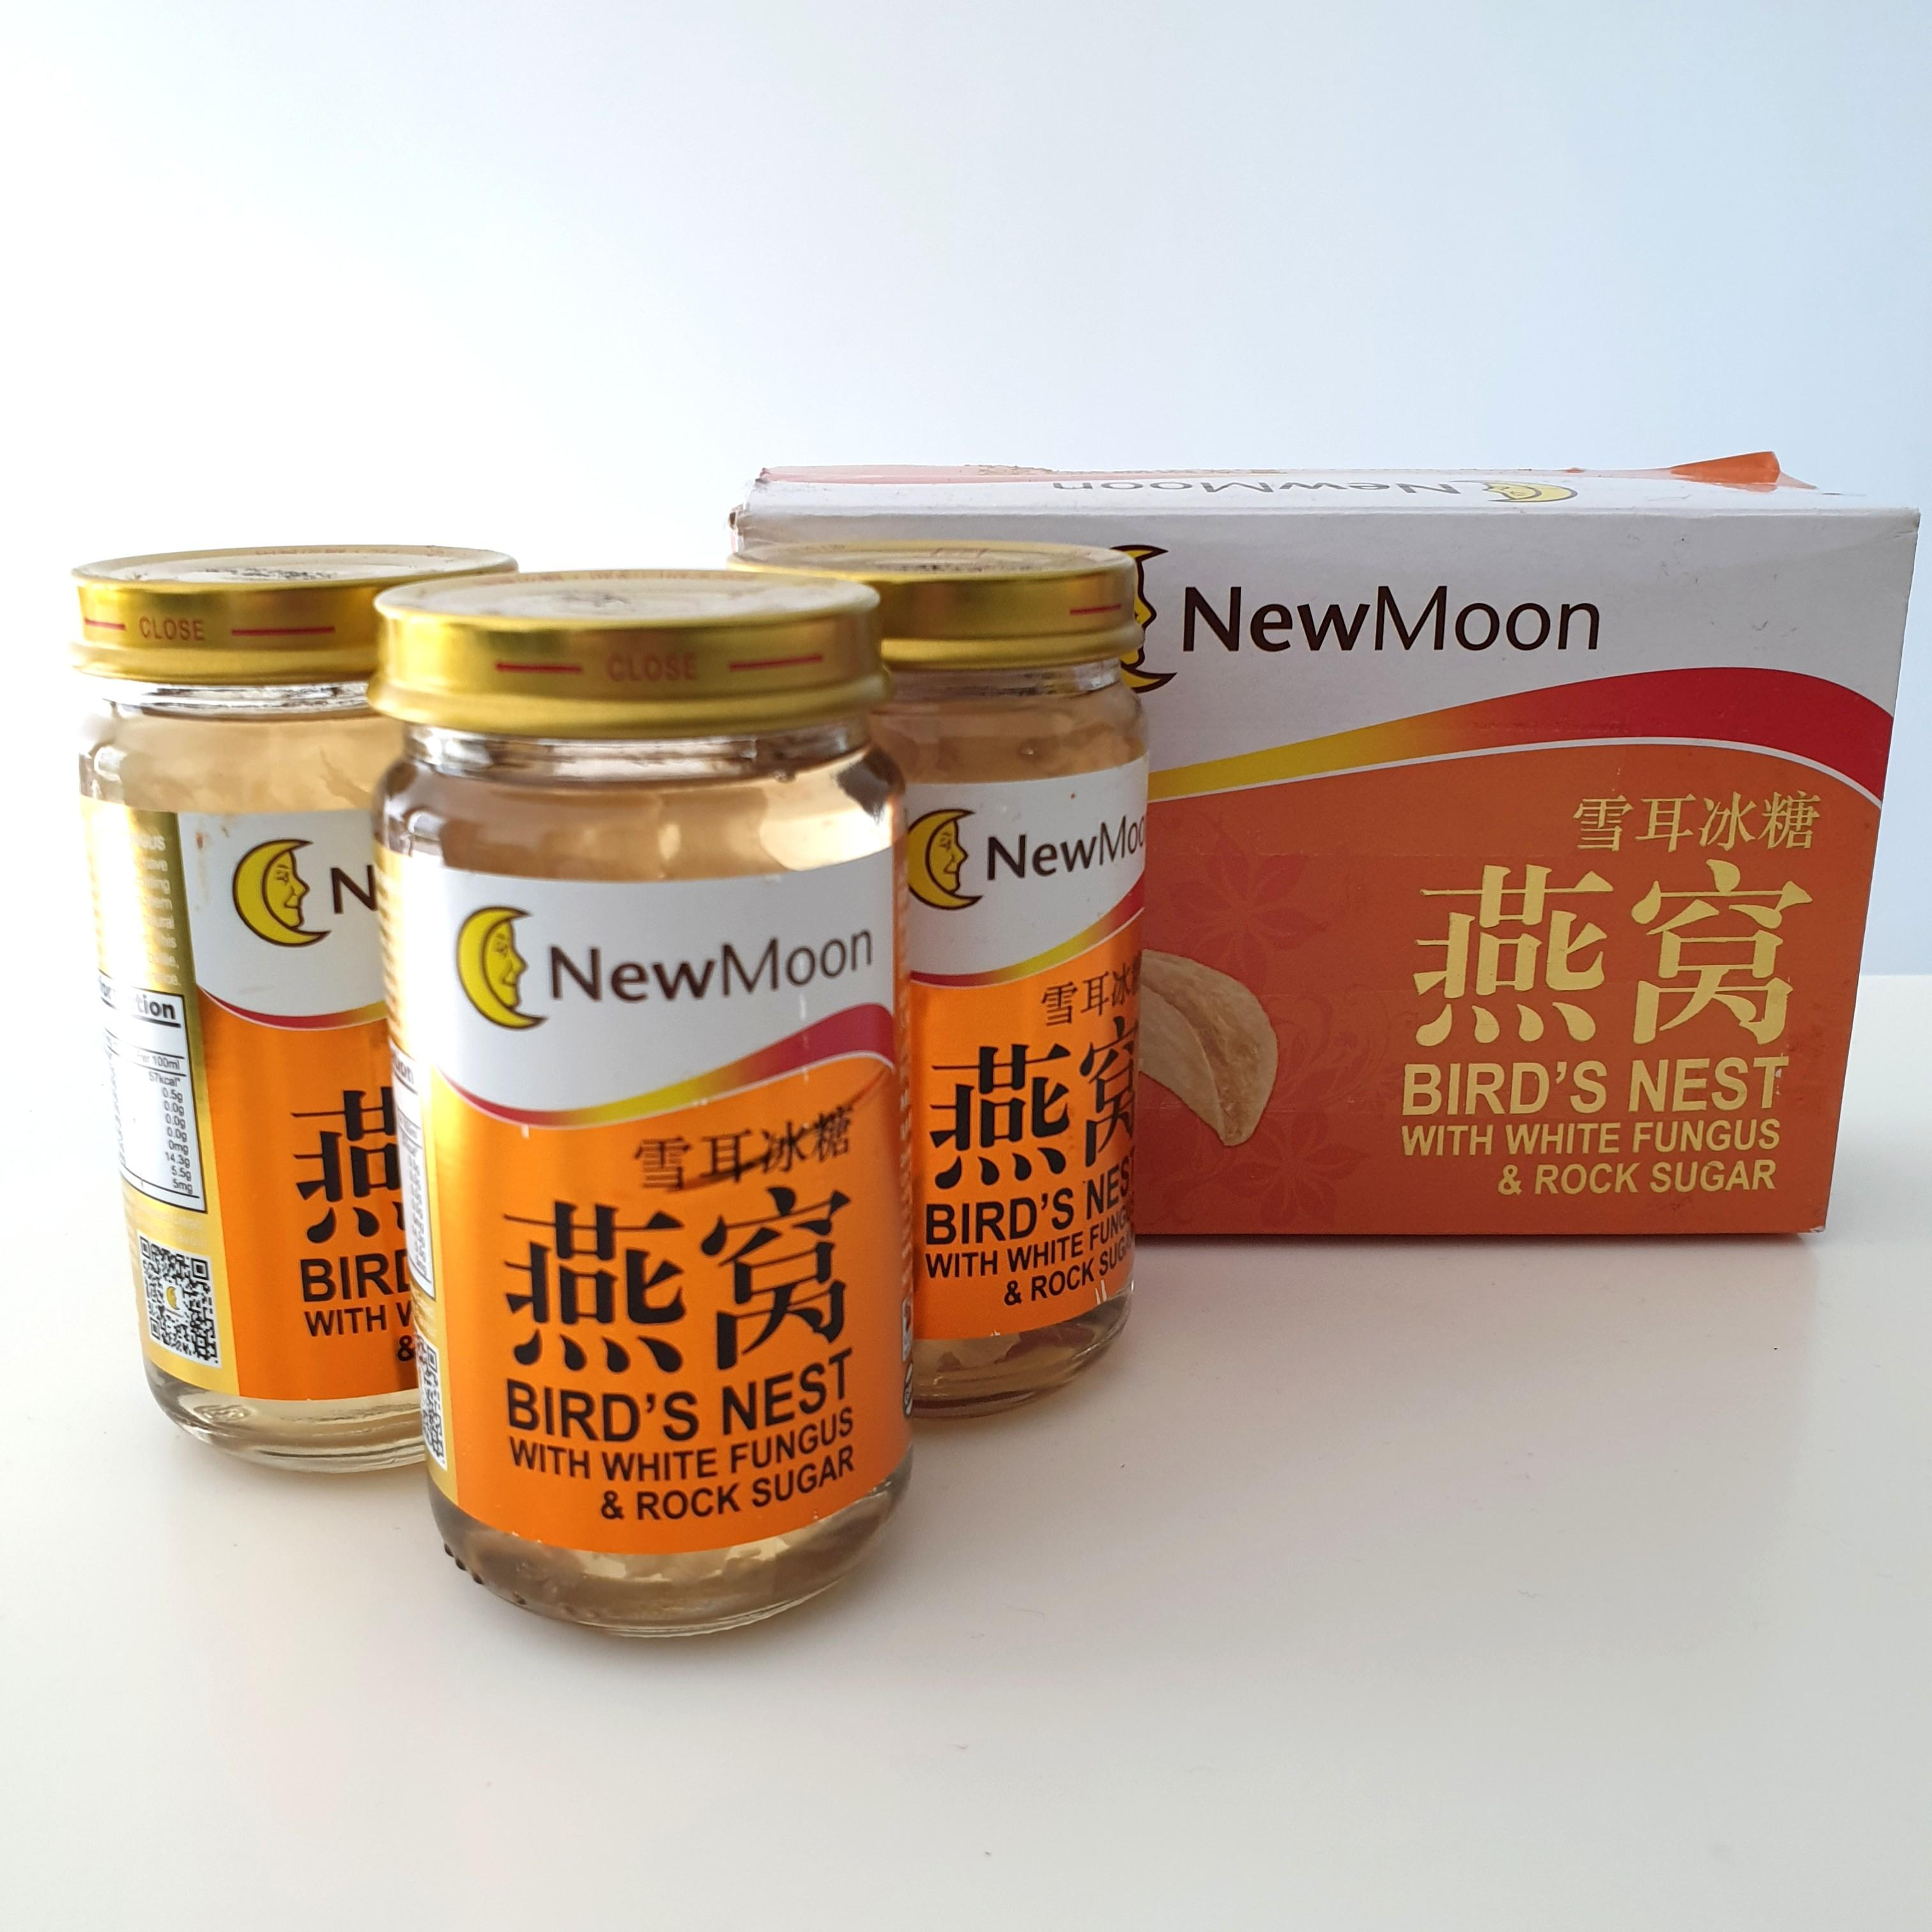 New Moon Birds Nest with White Fungus & Rock Sugar